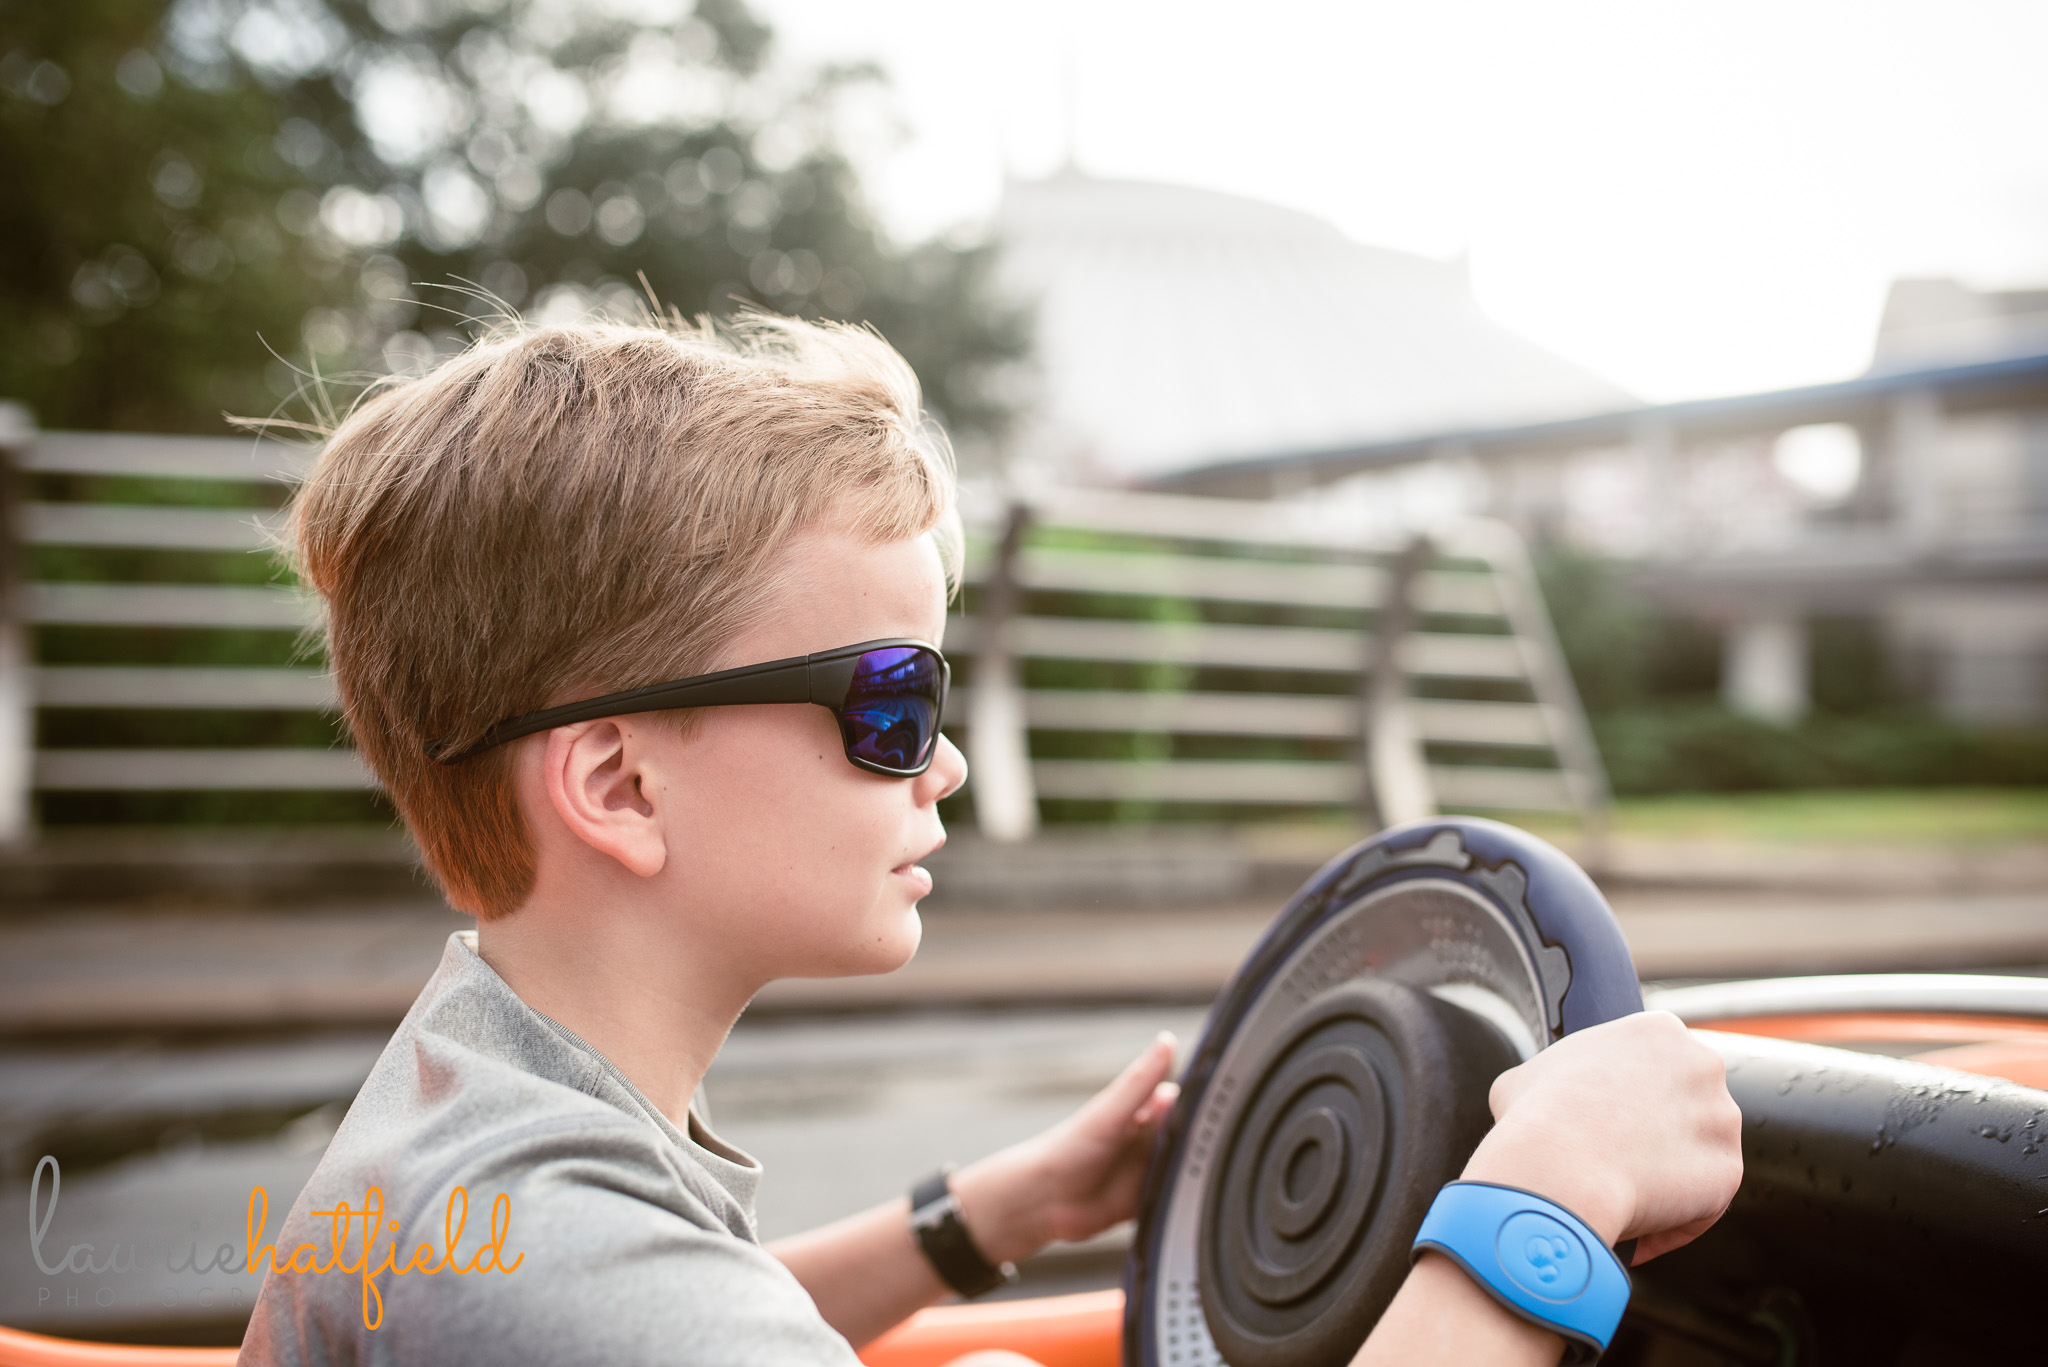 8-year-old driving at Tomorrowland Speedway | Mobile AL family photographer